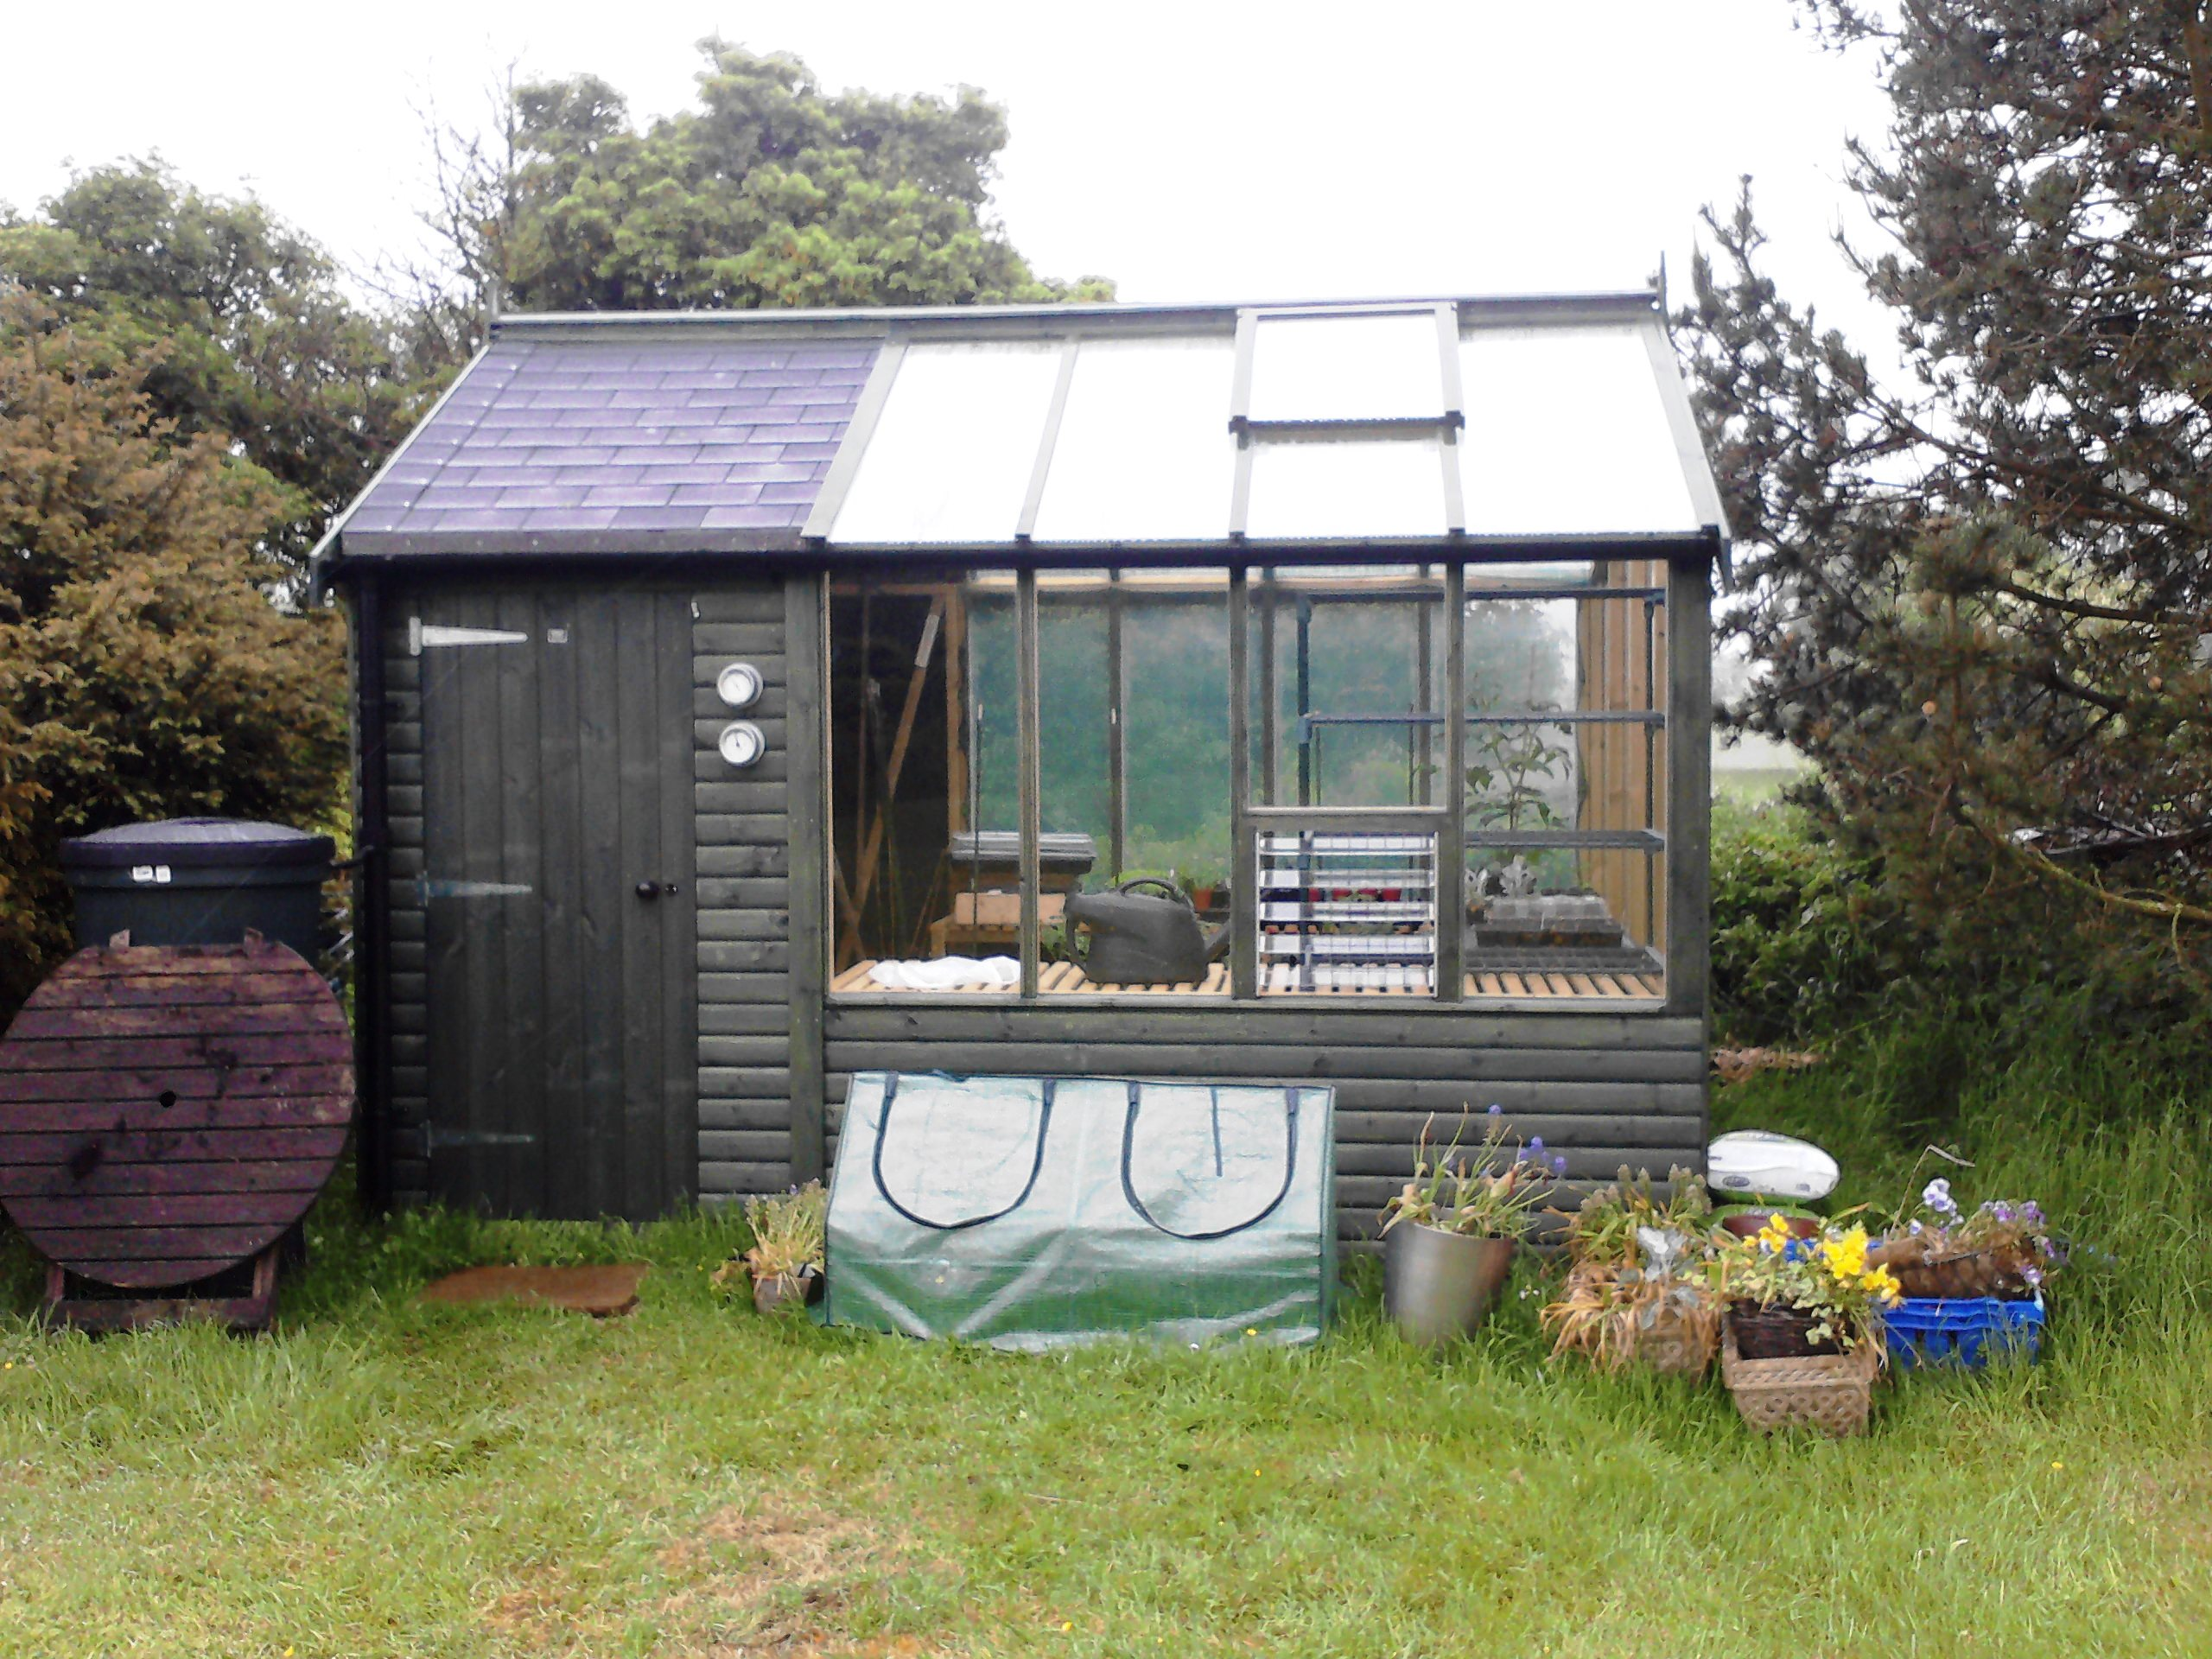 ... Shed Greenhouses And. on shed greenhouse combo garden building plans